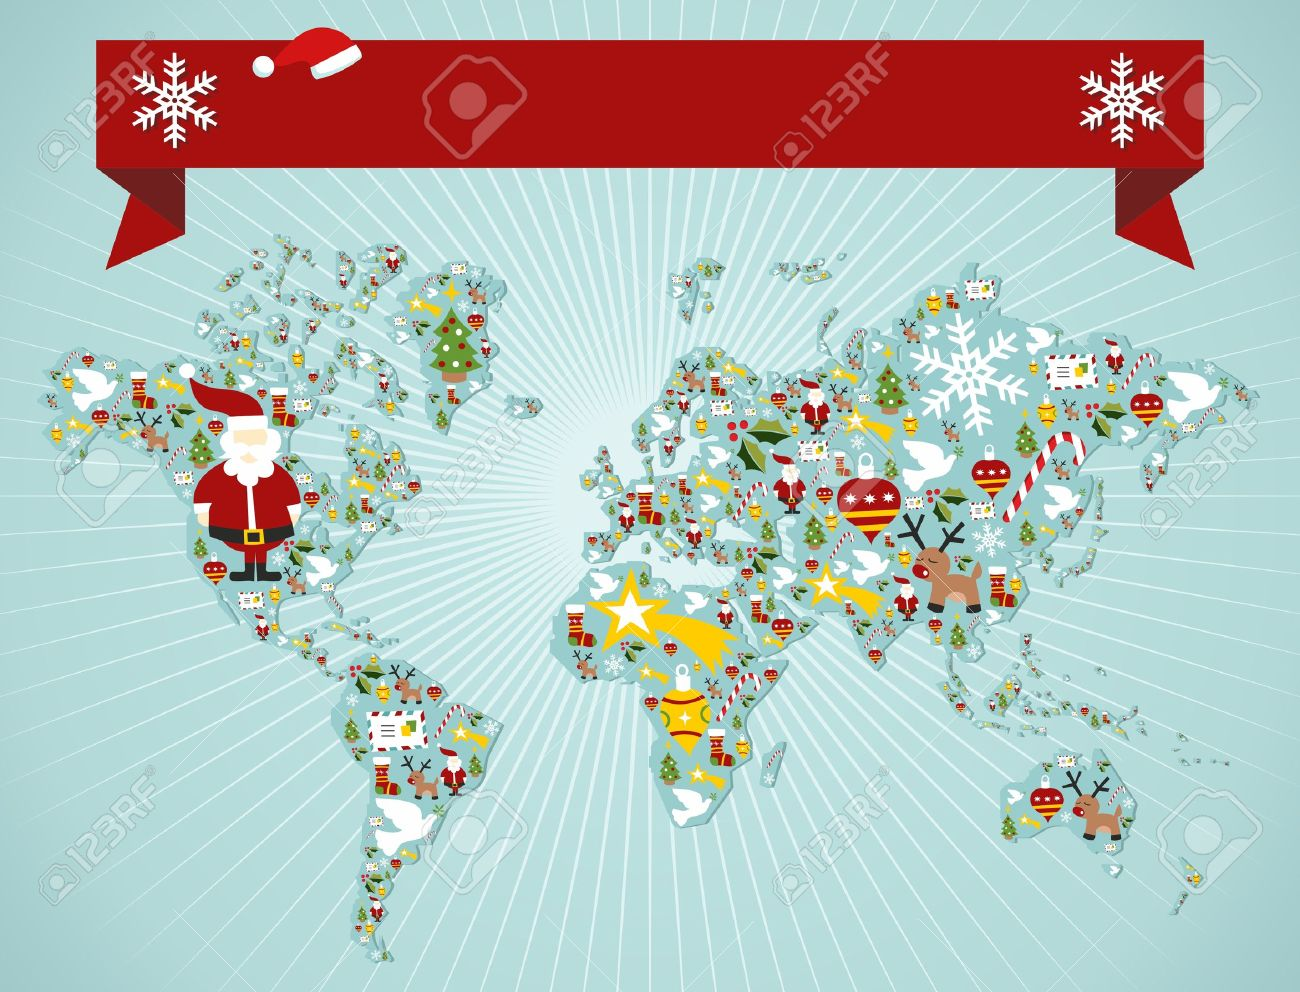 Christmas icon set in globe world map background with blank space banner. Stock Vector - 11647393